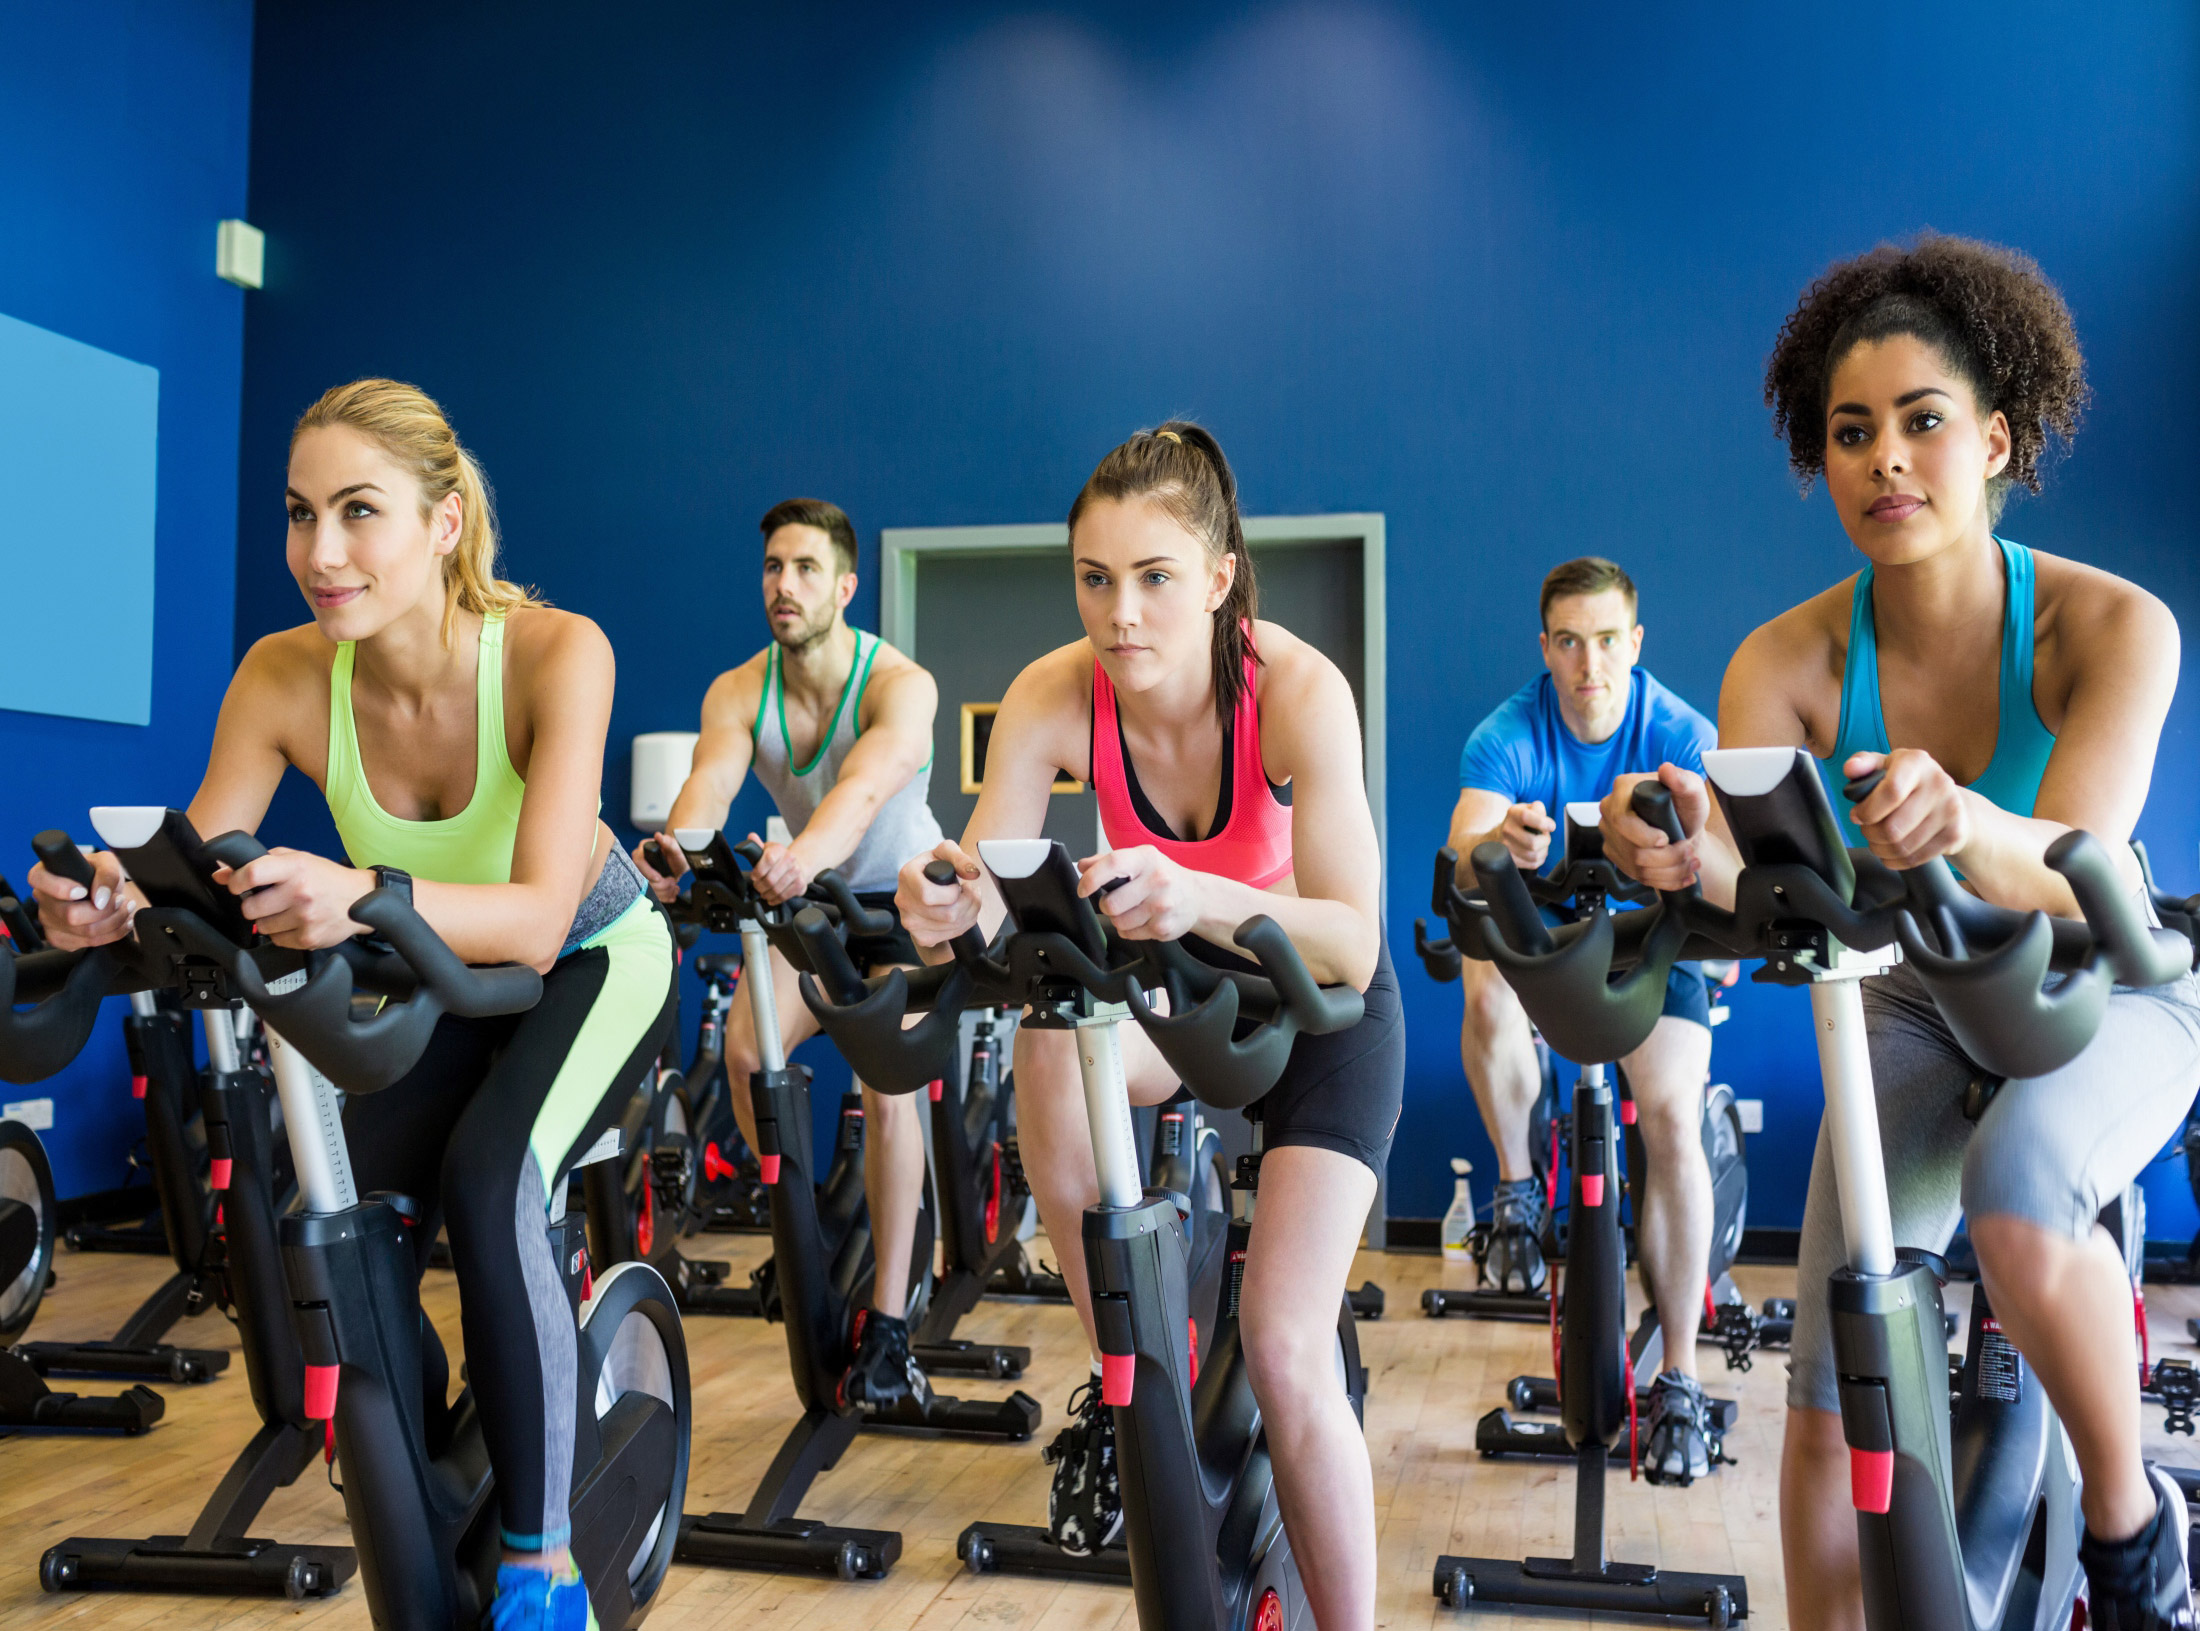 Some Of The Must-Have Gym Equipment You Need for a Fitness Studio